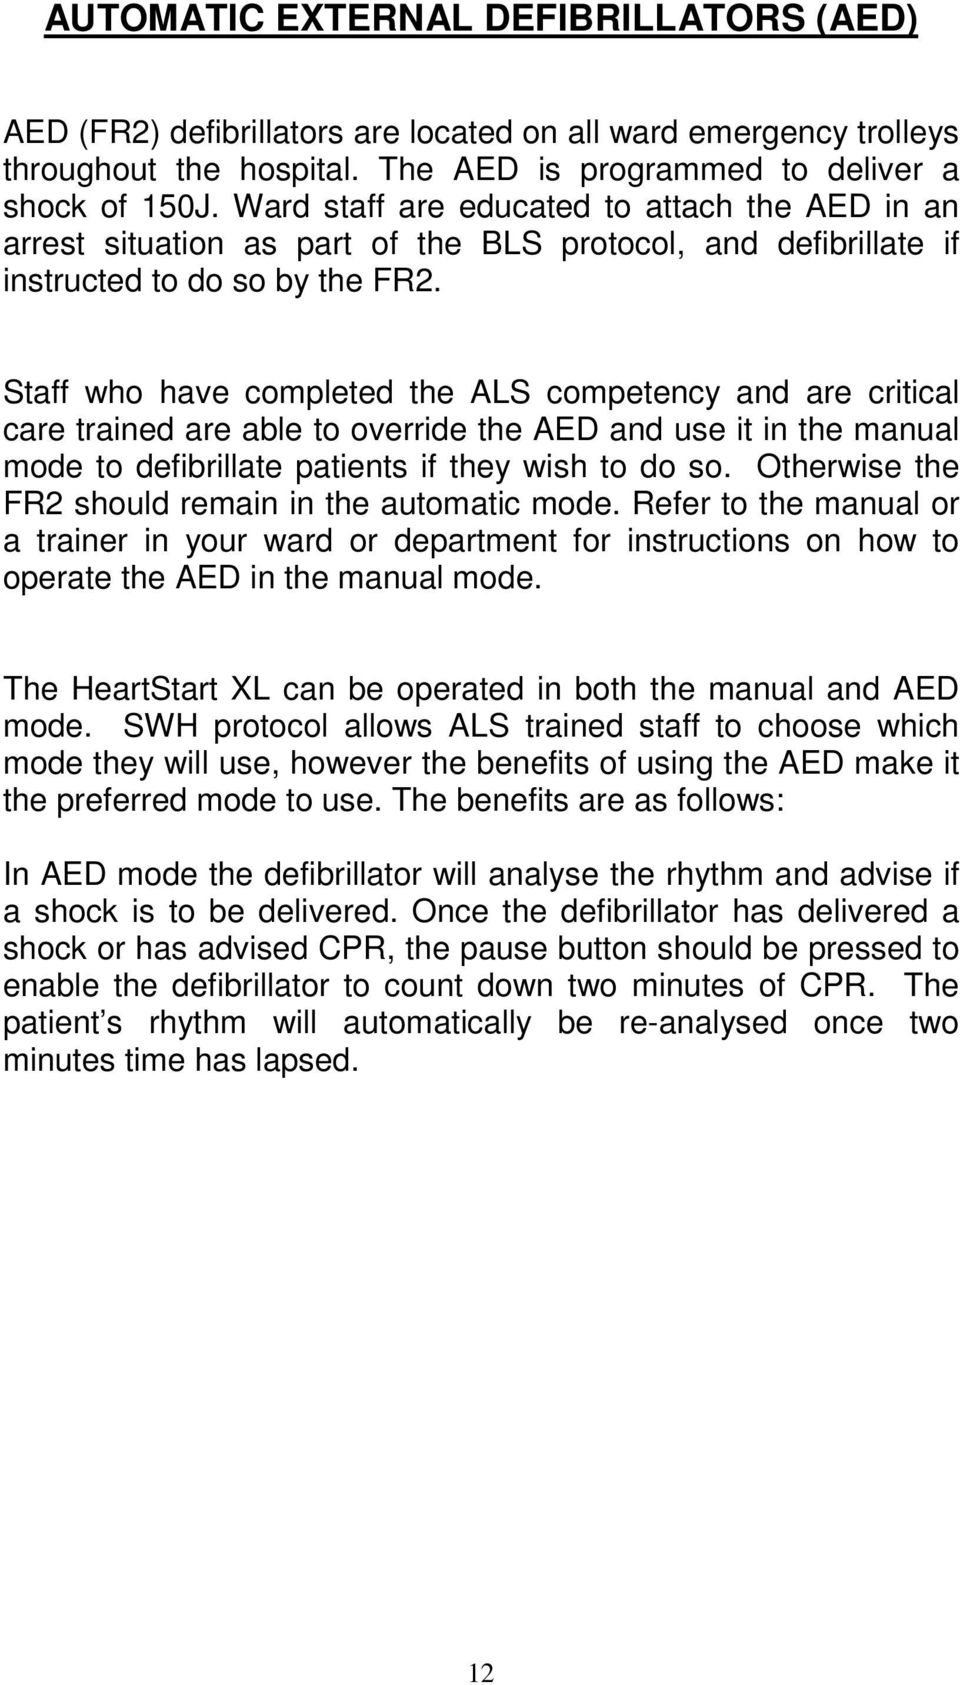 Staff who have completed the ALS competency and are critical care trained are able to override the AED and use it in the manual mode to defibrillate patients if they wish to do so.